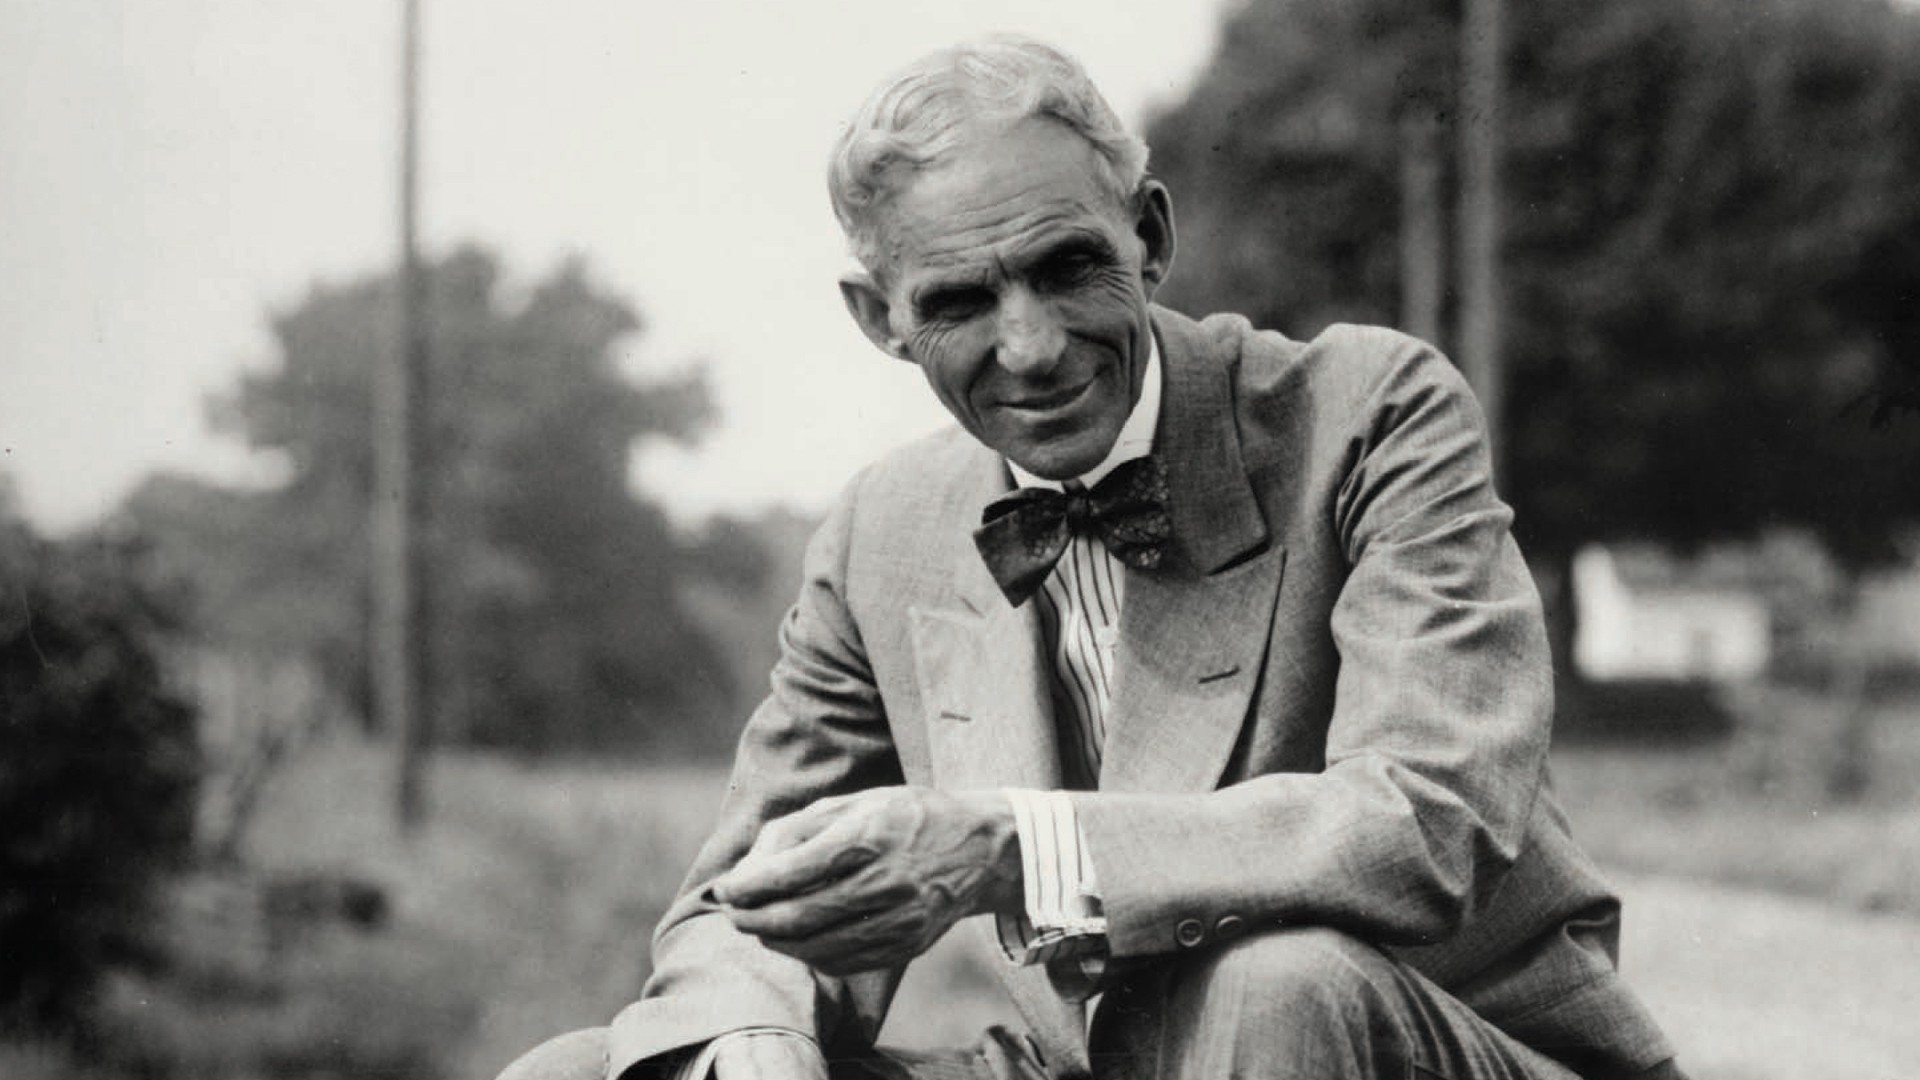 Henry Ford's 3 recommendations to avoid lousy teamwork